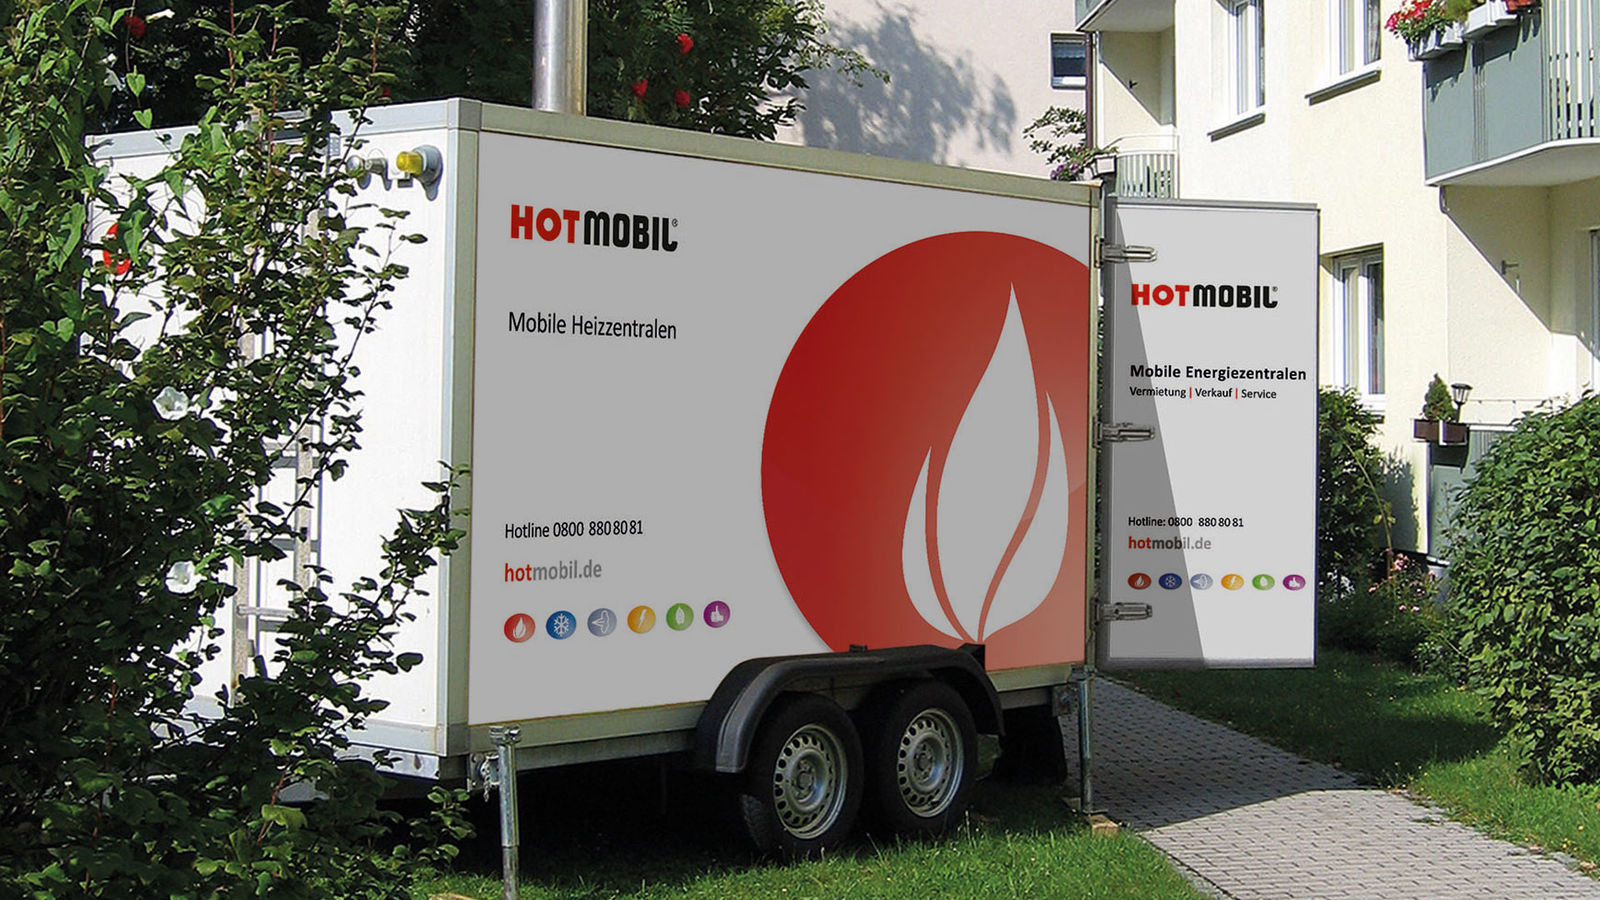 ONLINE MARKETINGMANAGER (M/W/D) - Job Gottmadingen - Hotmobil Deutschland GmbH - Karriereportal